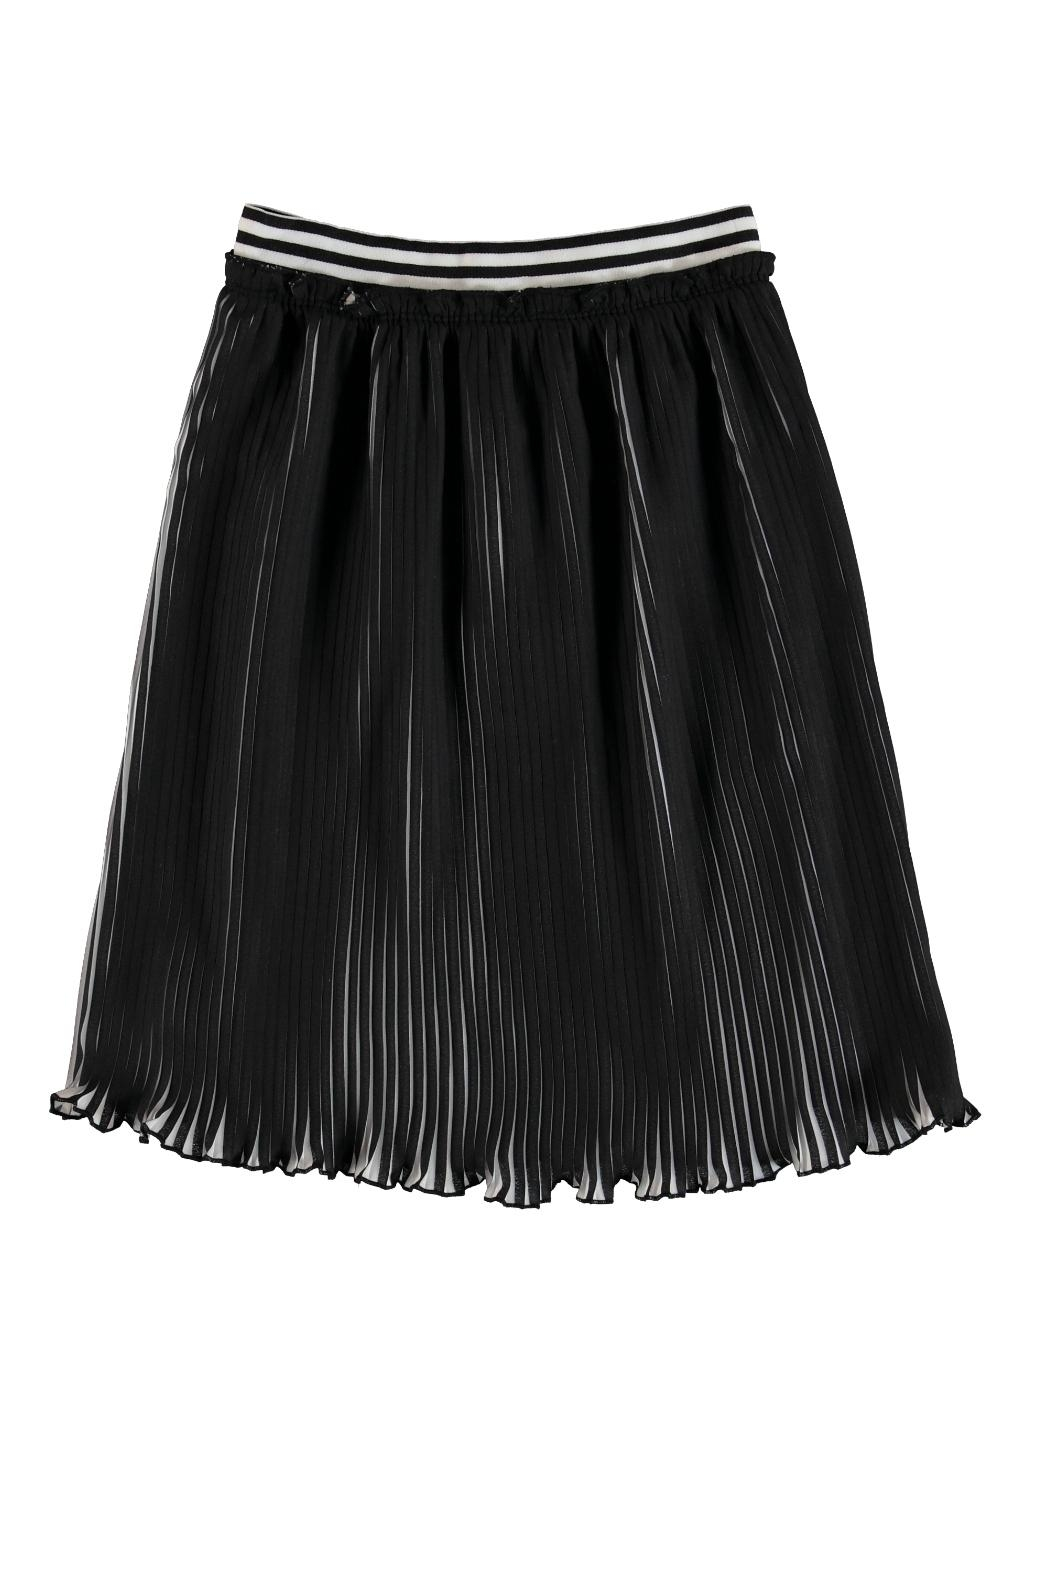 Molo Beatrix Skirt - Main Image